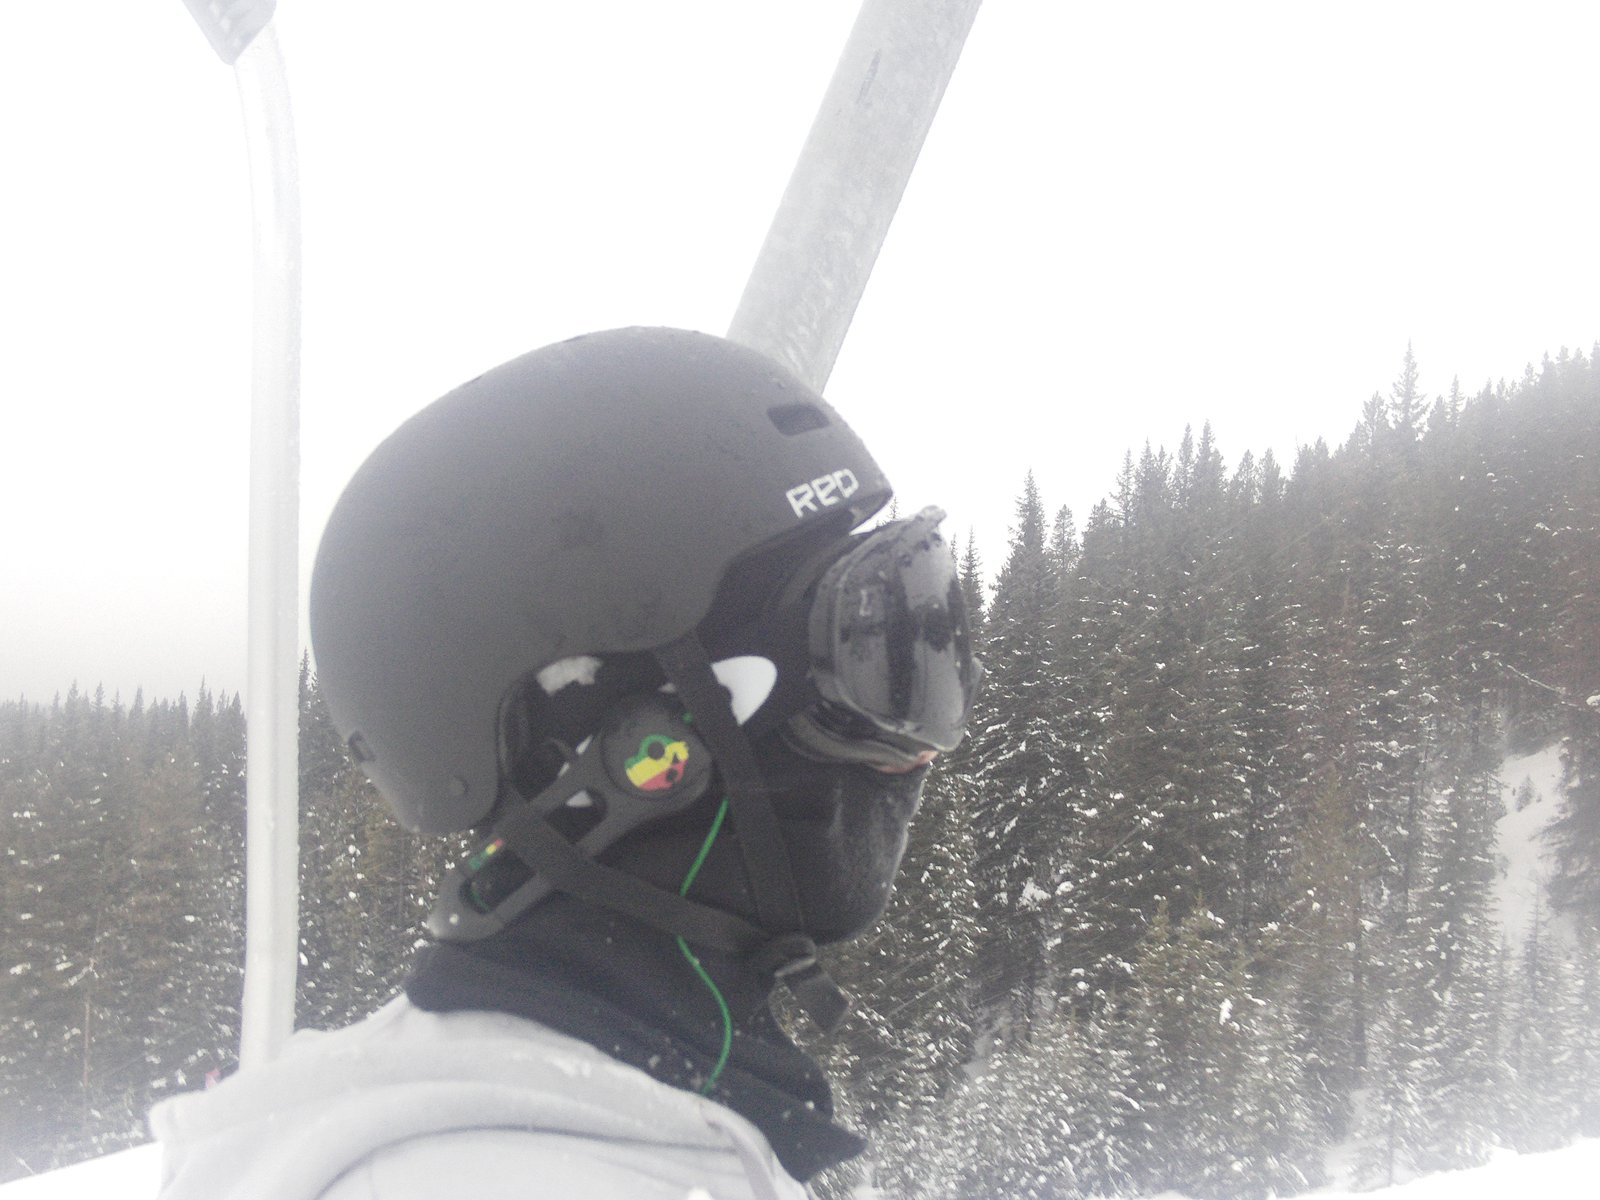 going up the lift